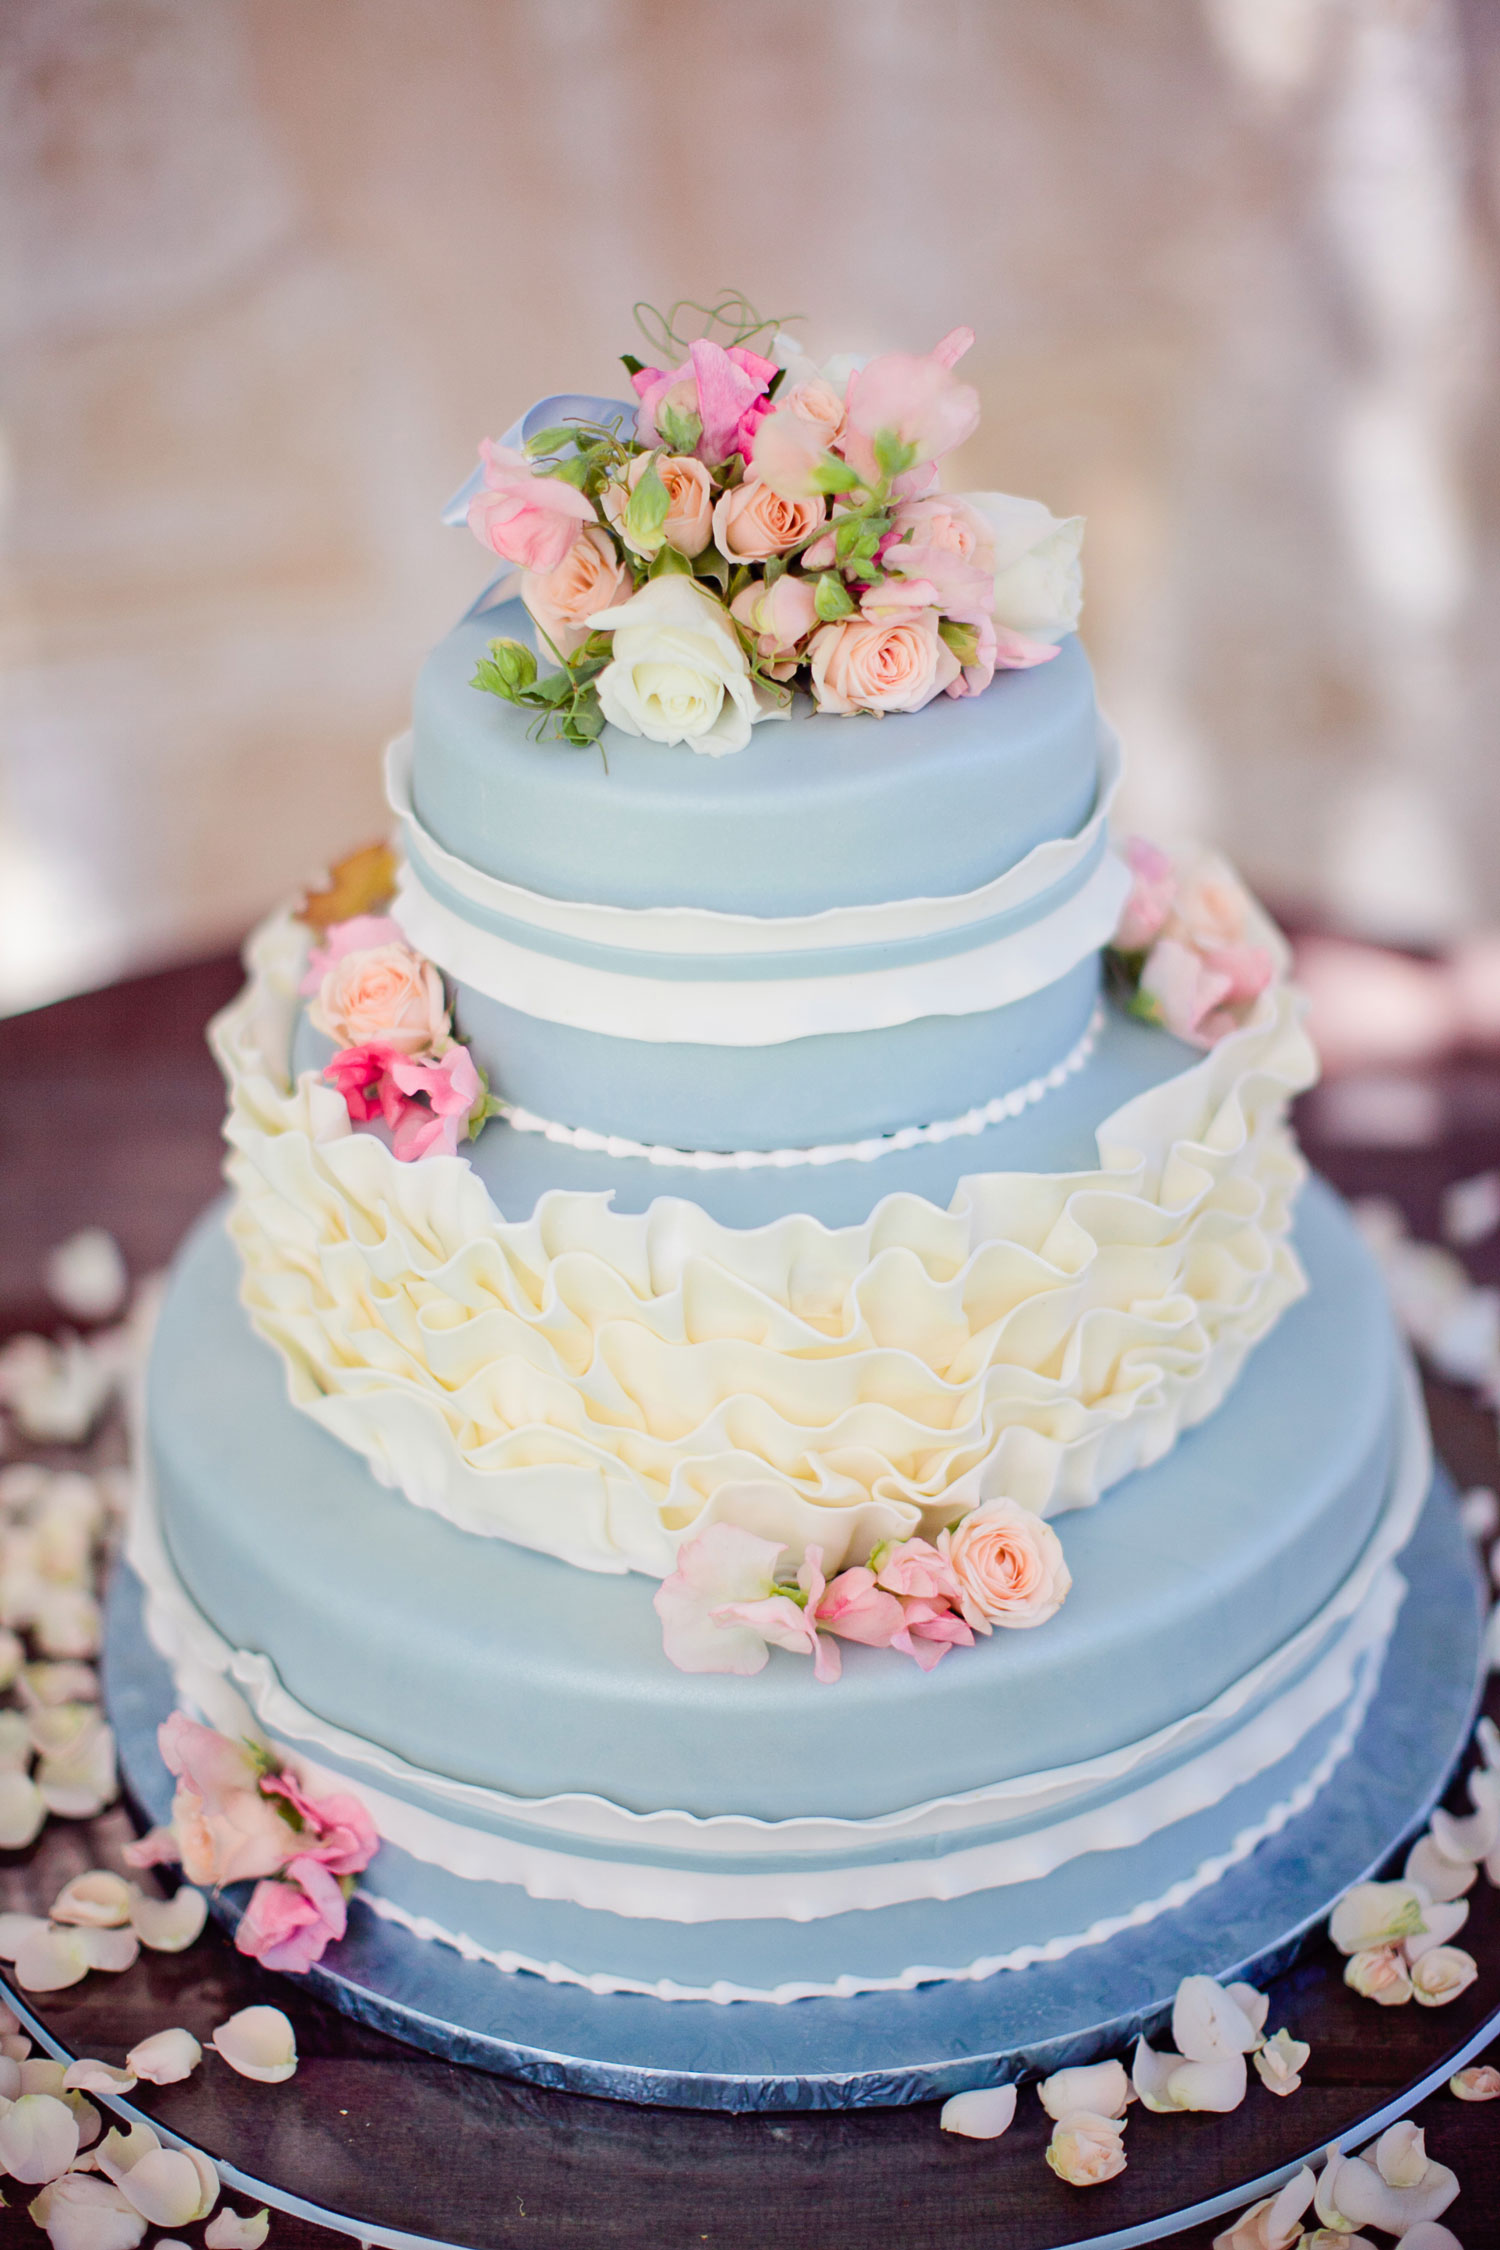 Shabby chic wedding cake ideas light blue ruffle flowers